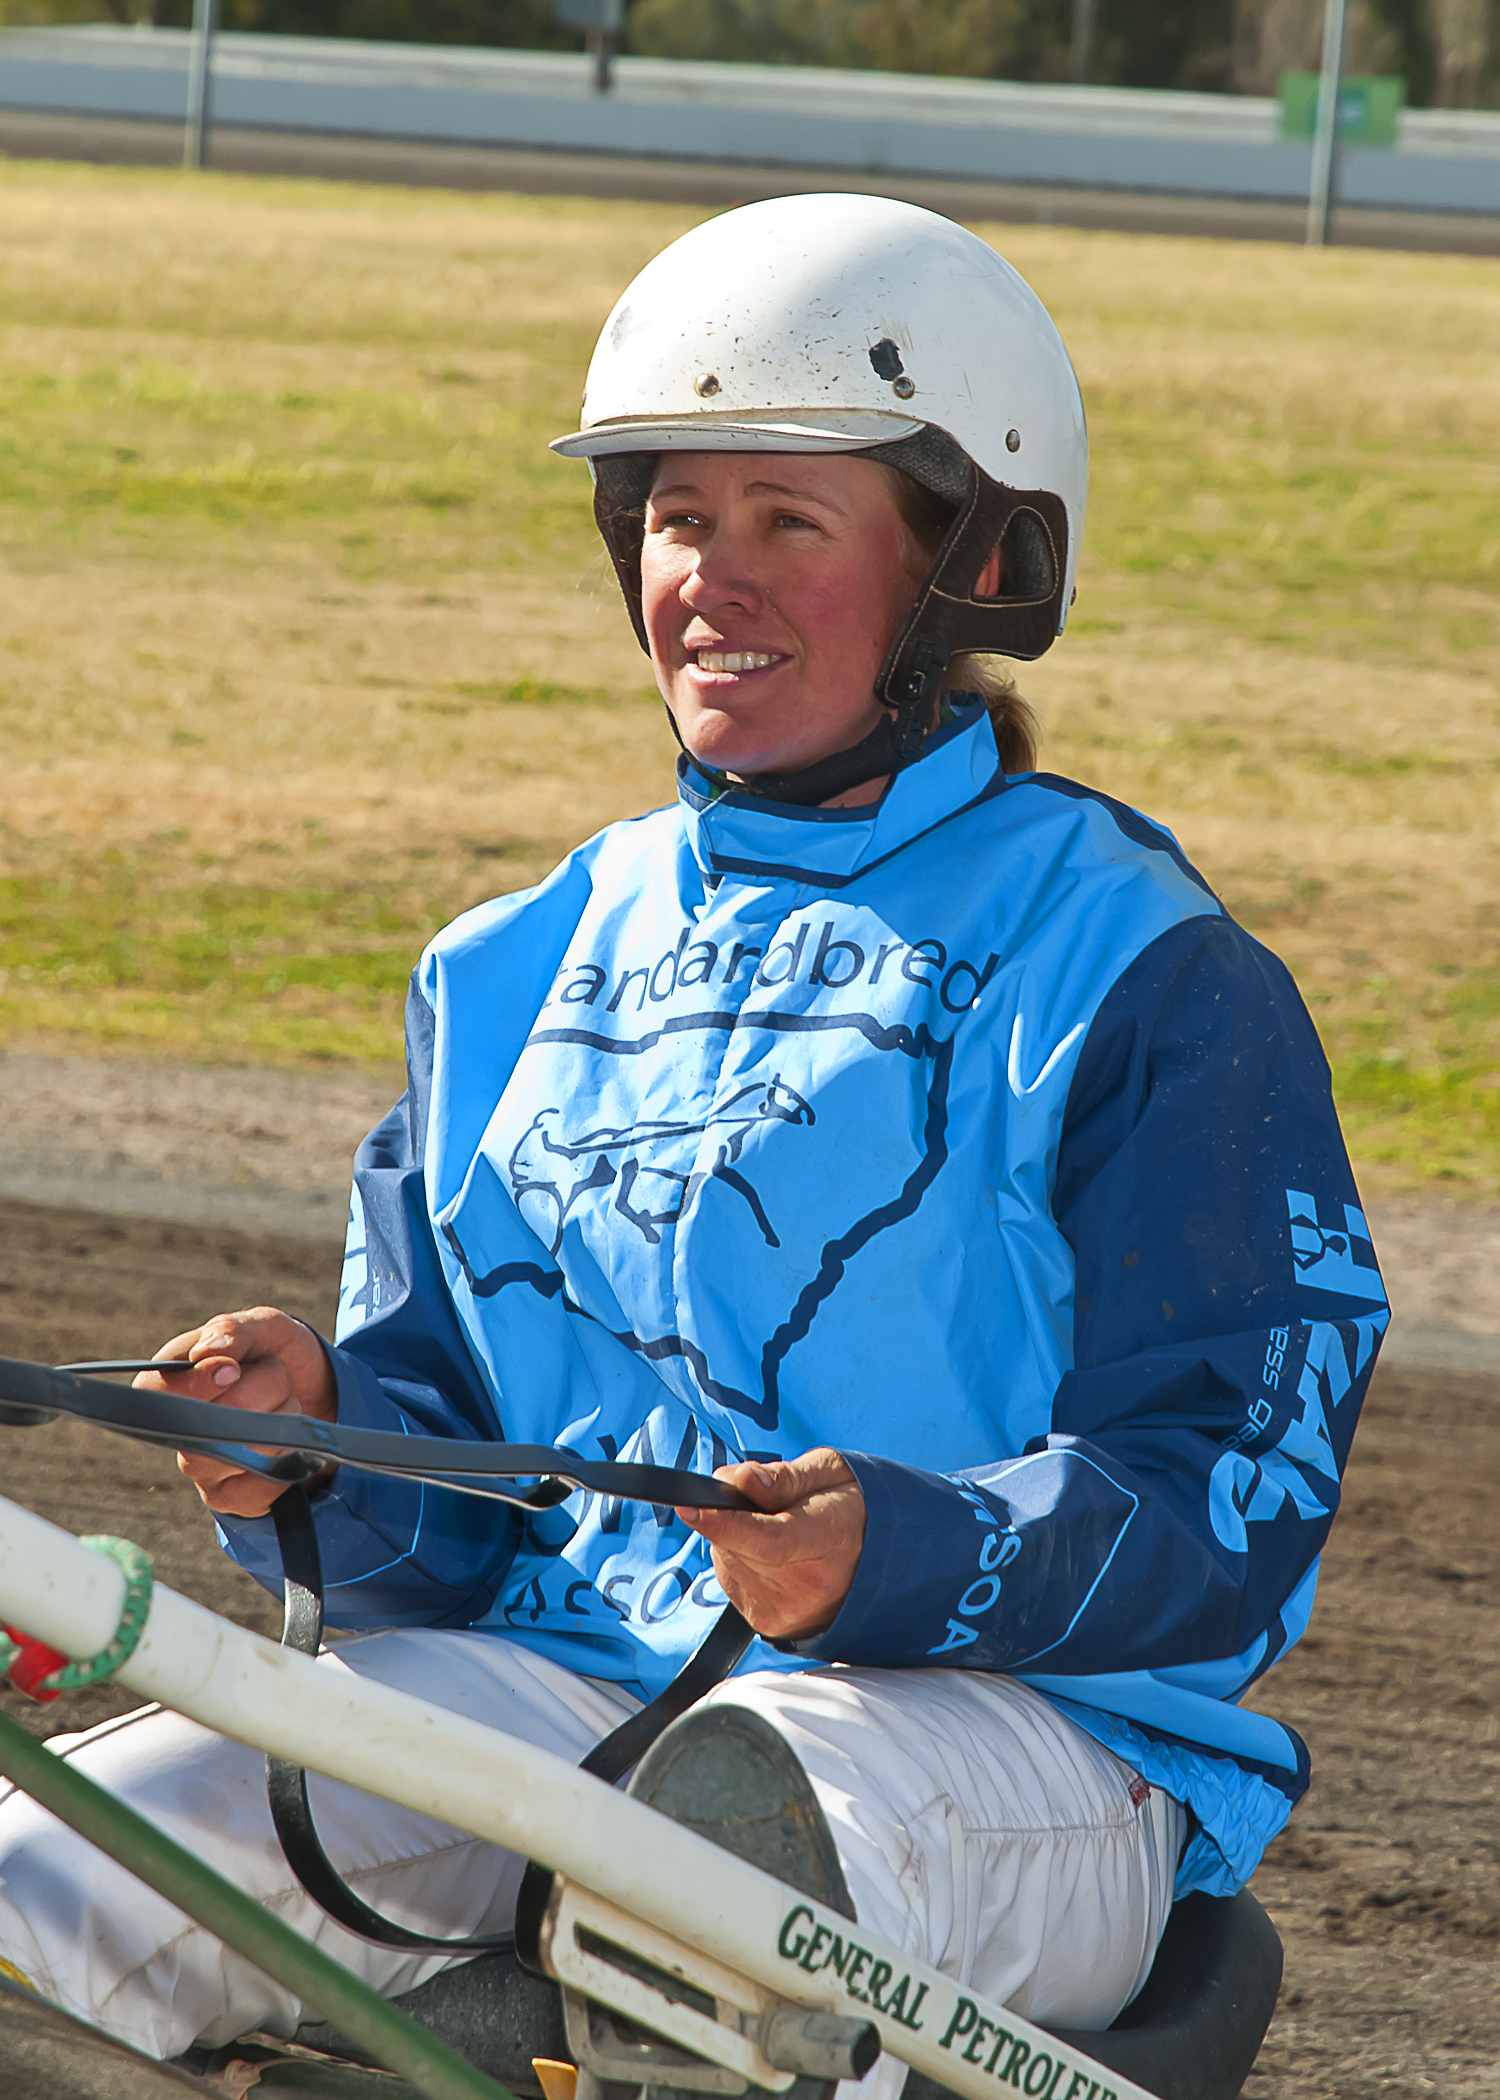 Image courtesy PeterMac Photography - Stacey Weidemann has inherited the family passion for harness racing.